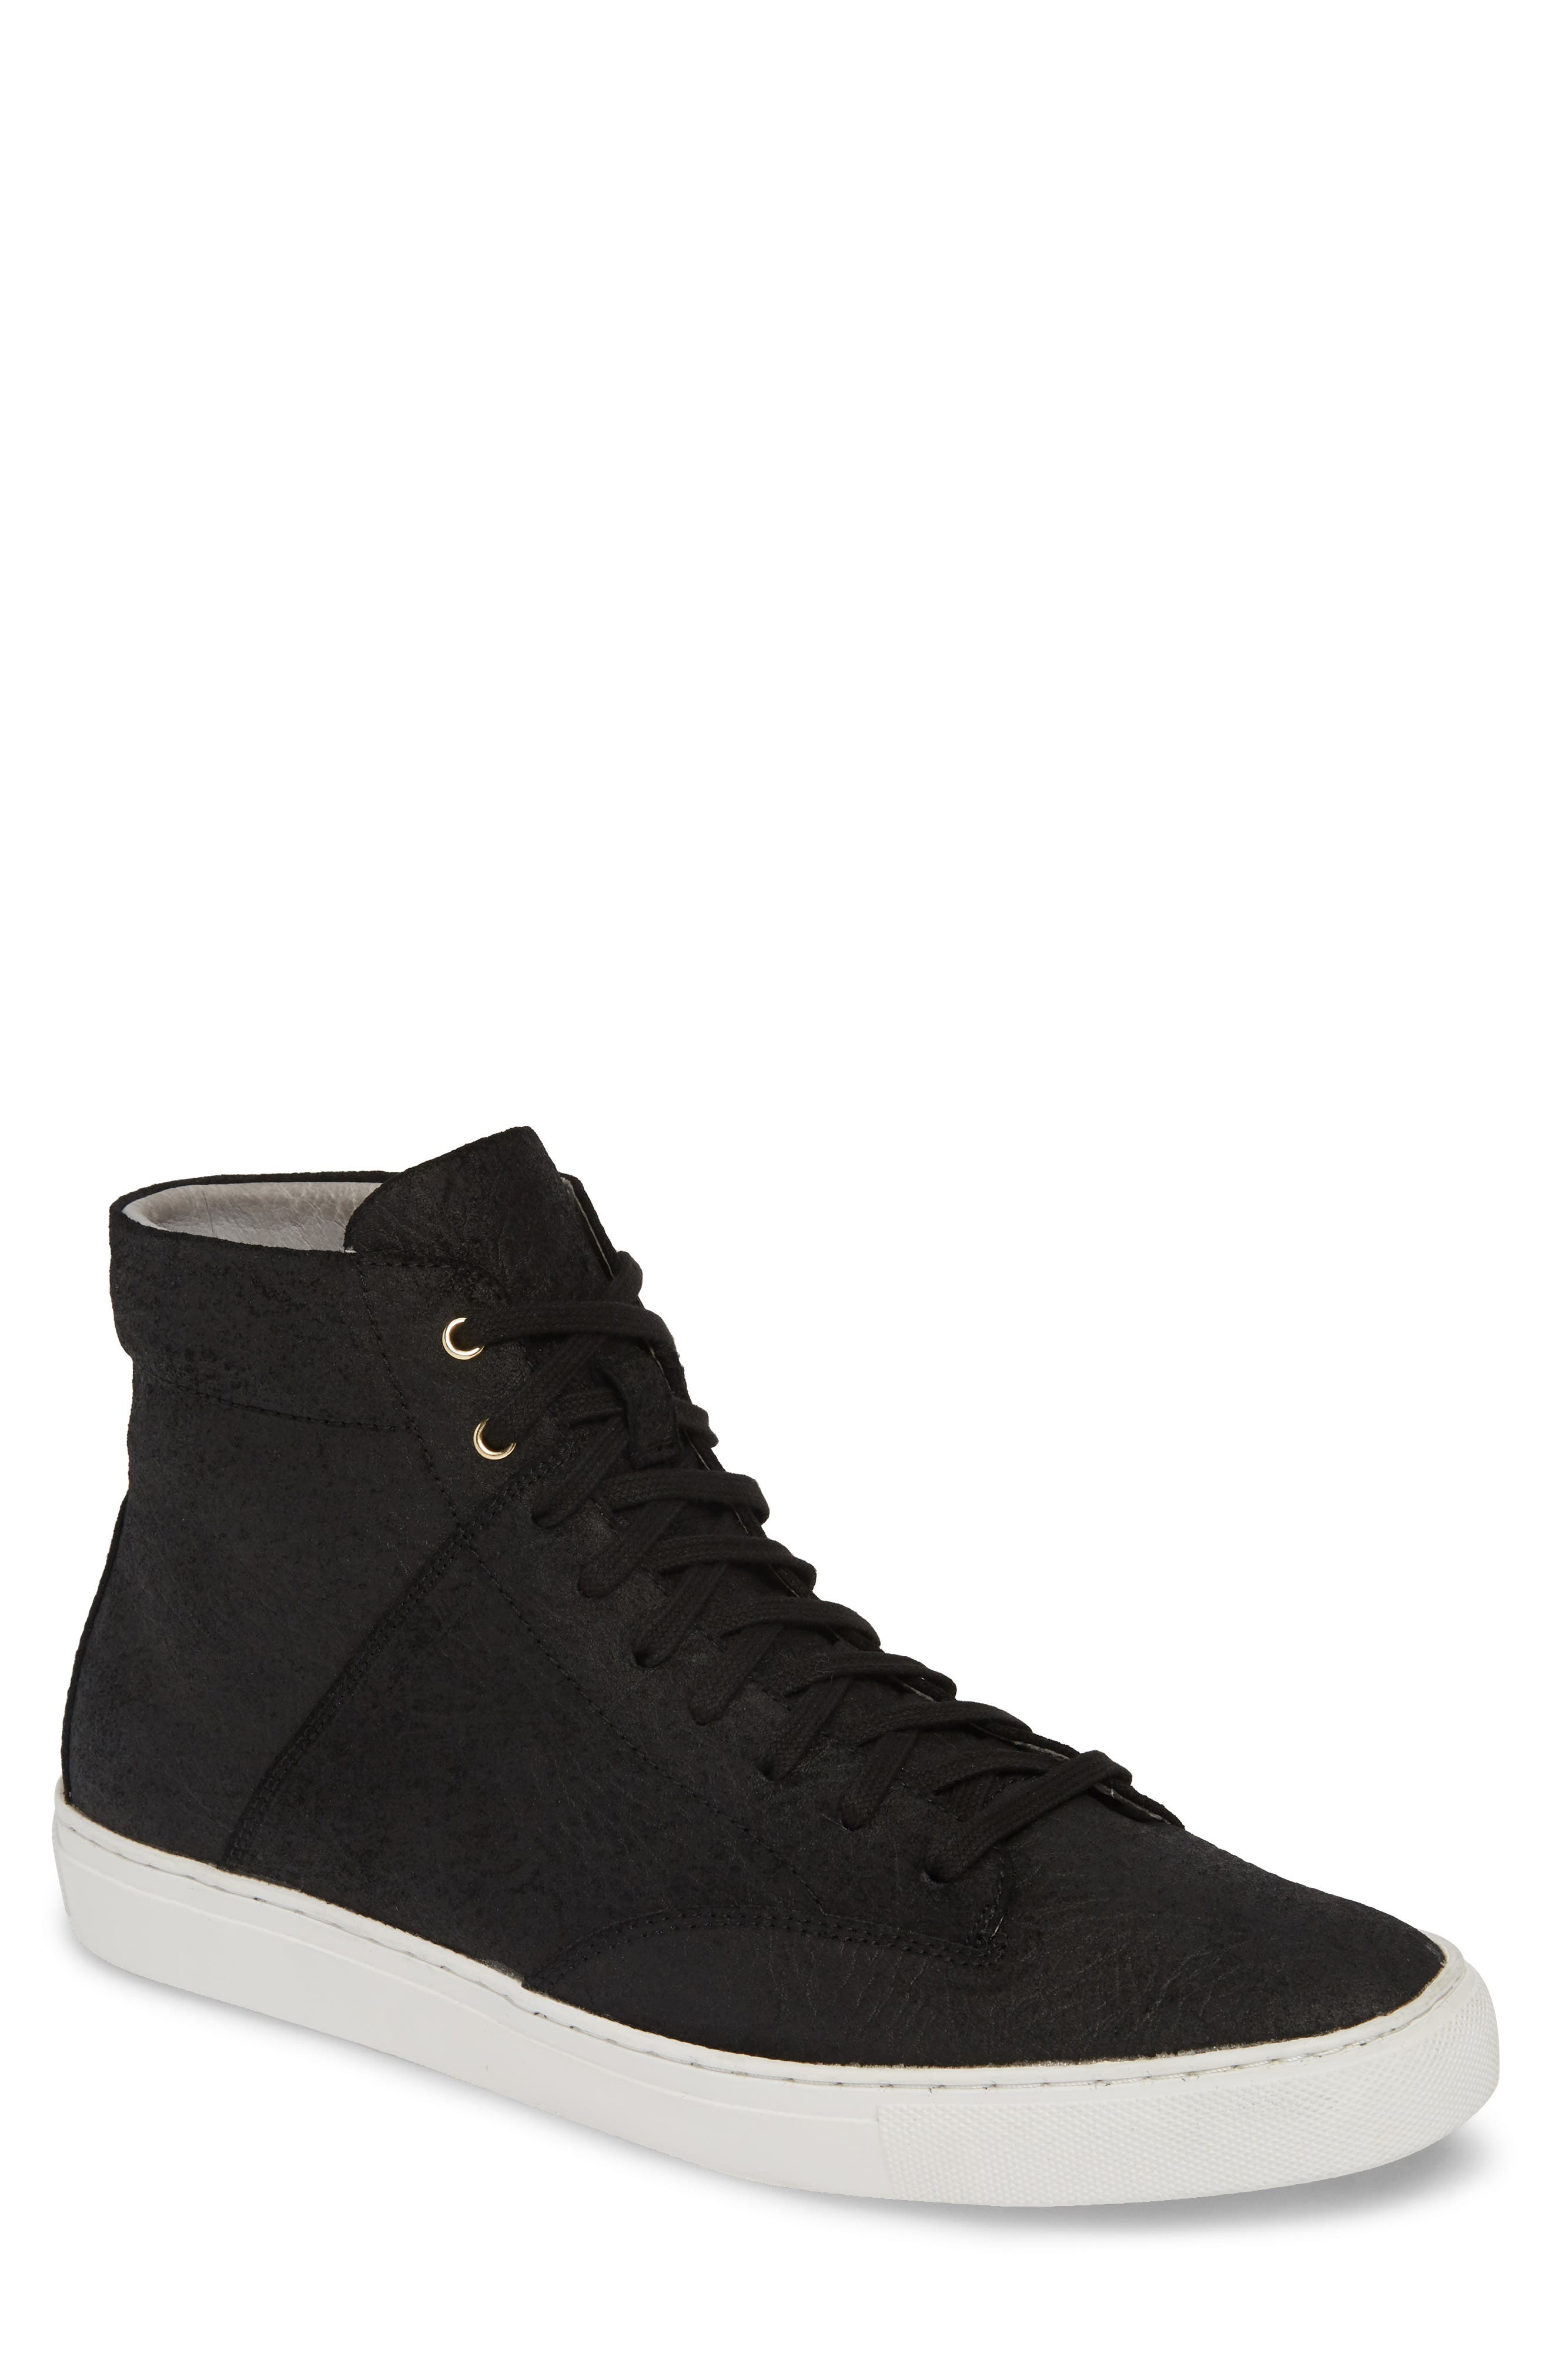 TCG 'Porter' High Top Sneaker, Main, color, BLACK LEATHER